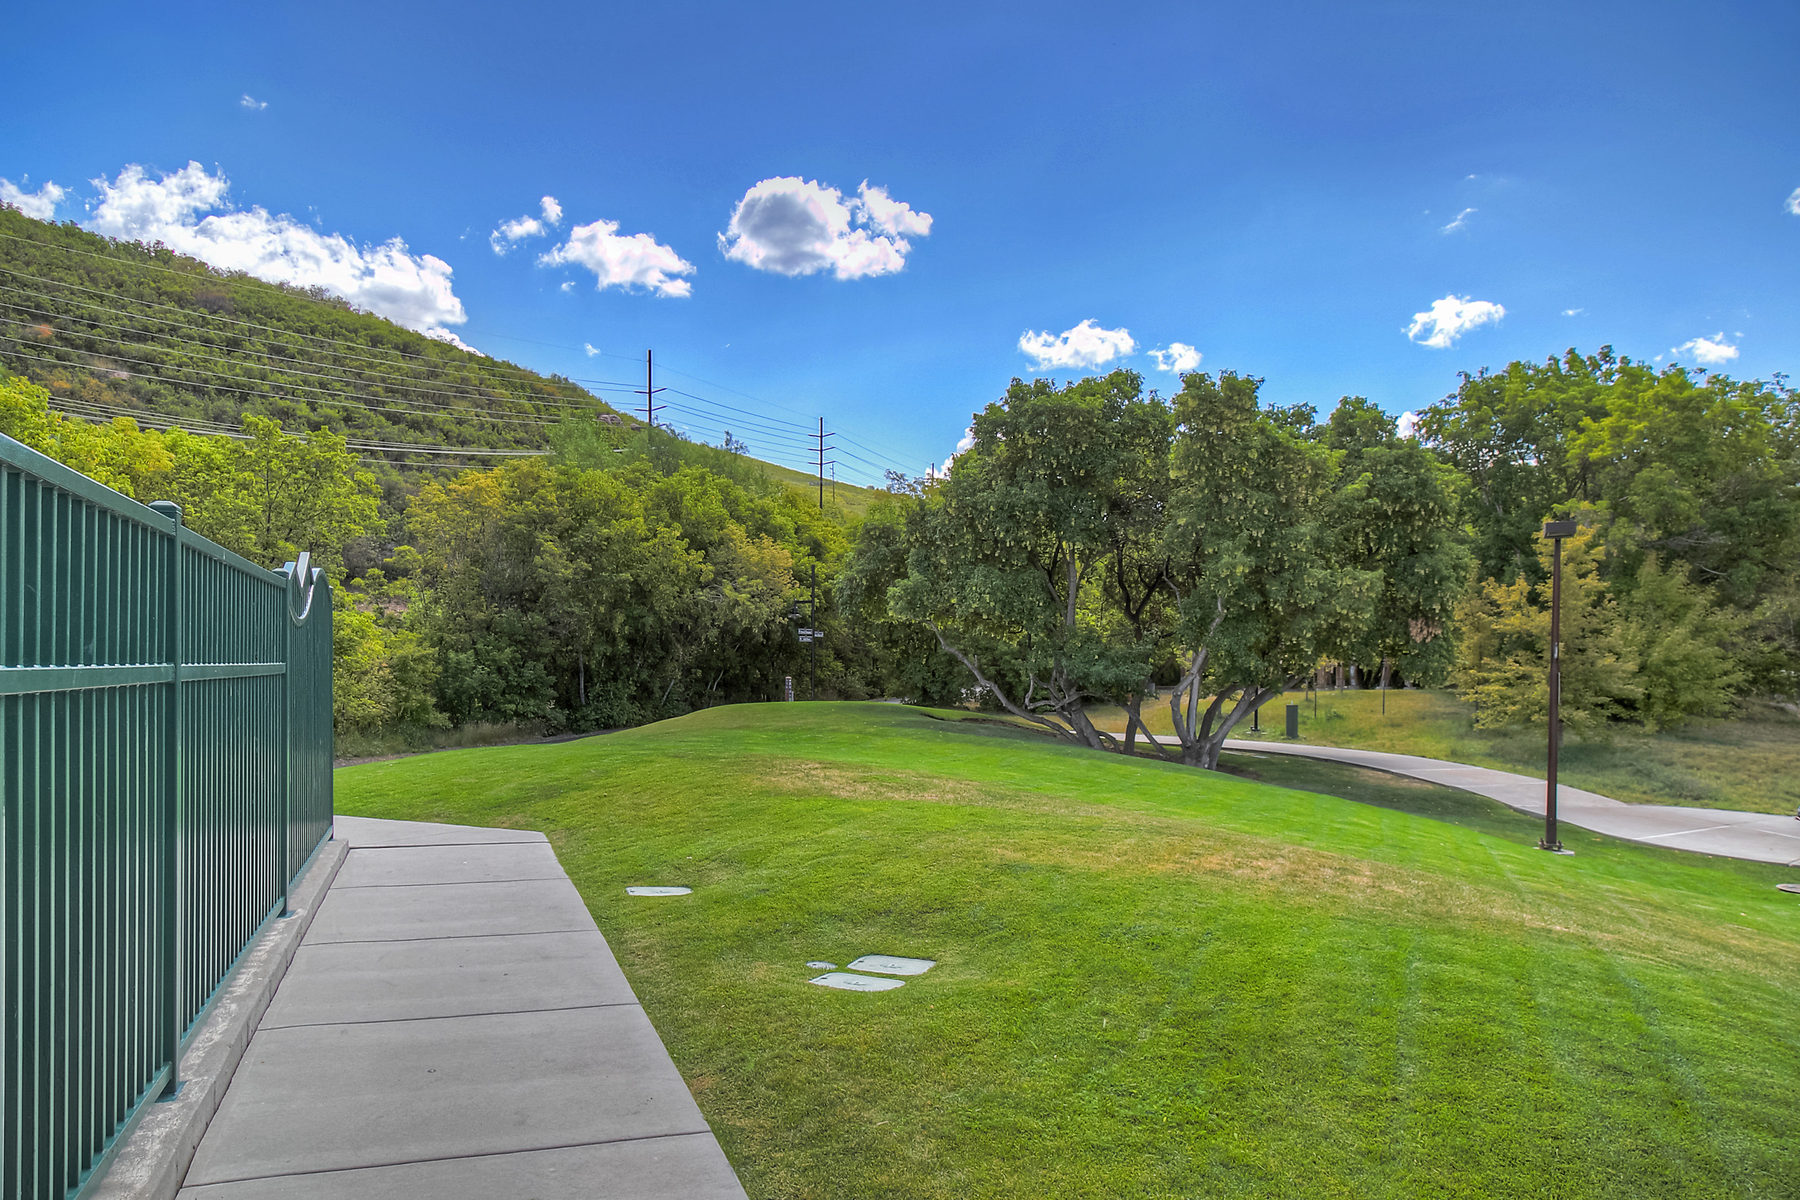 Additional photo for property listing at 3 Lot Development Opportunity 1064 Park Ave Lot 15 & Lot 16 Park City, Utah 84060 États-Unis